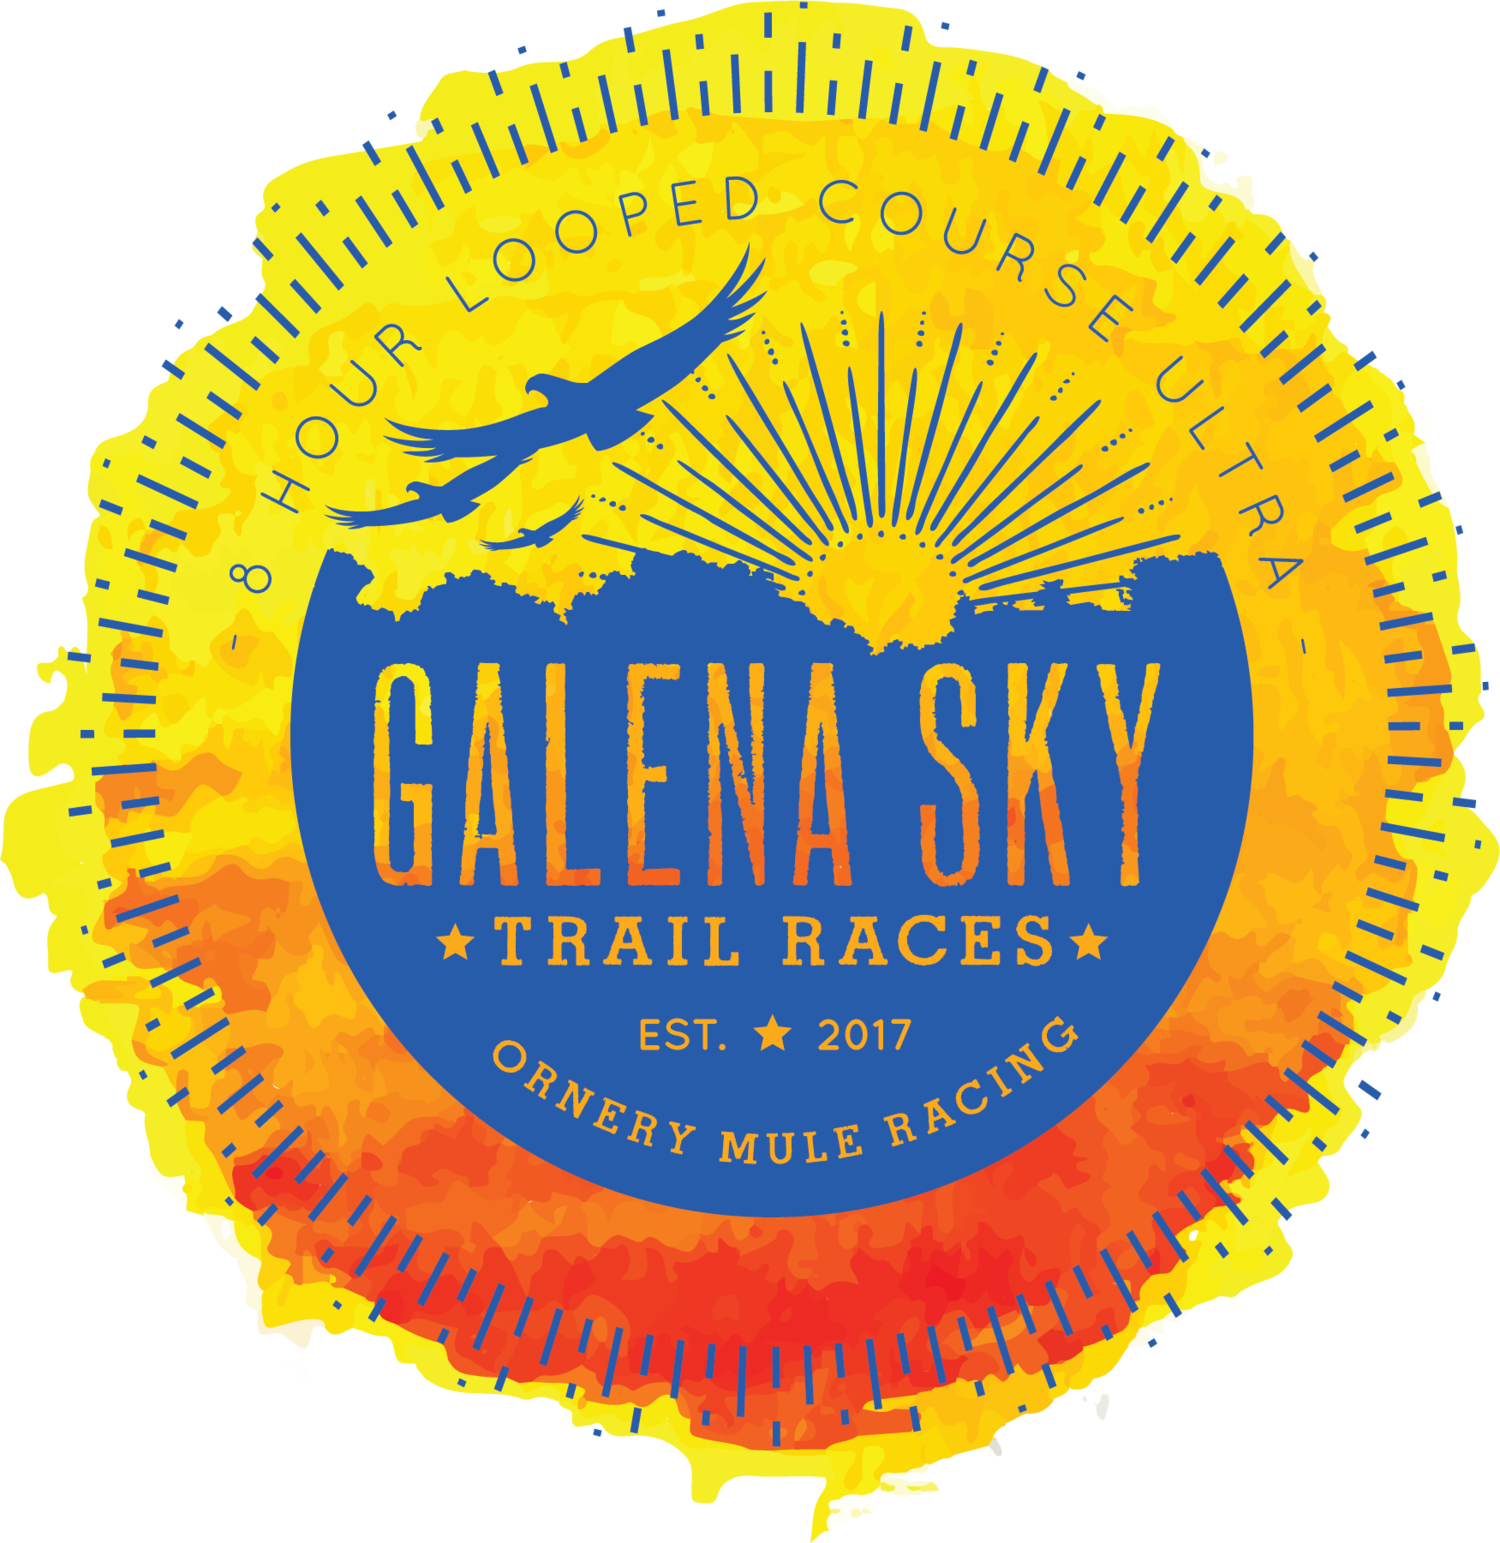 Galena Sky Trail Race